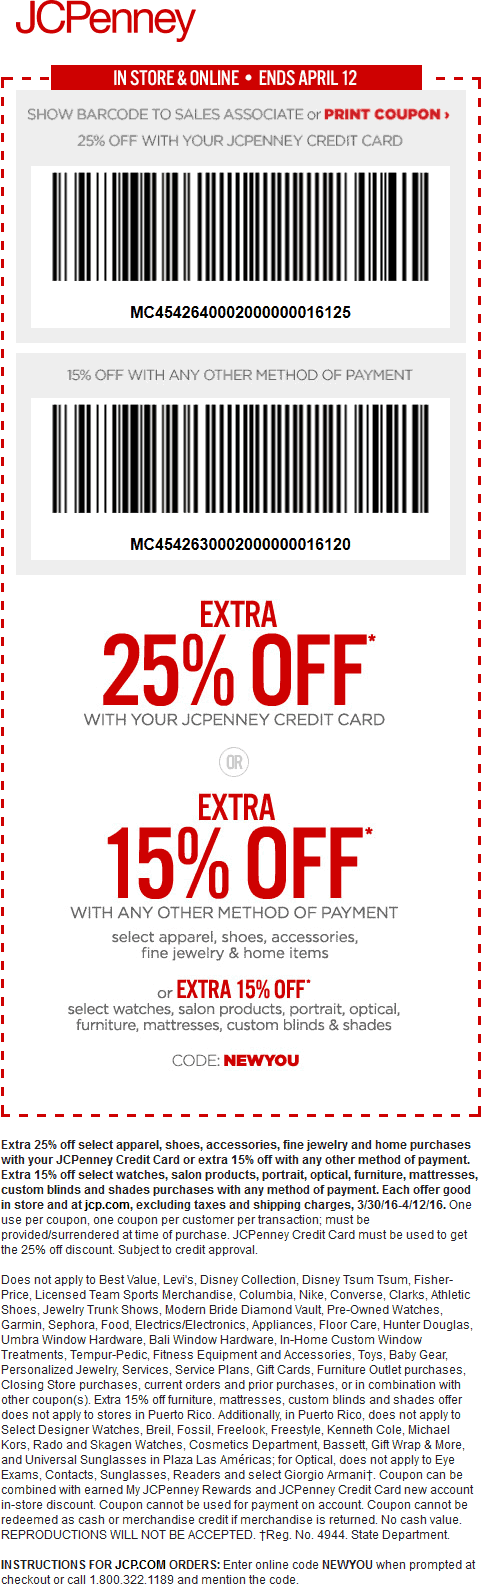 JCPenney Coupon July 2017 Extra 15% off at JCPenney, or online via promo code NEWYOU